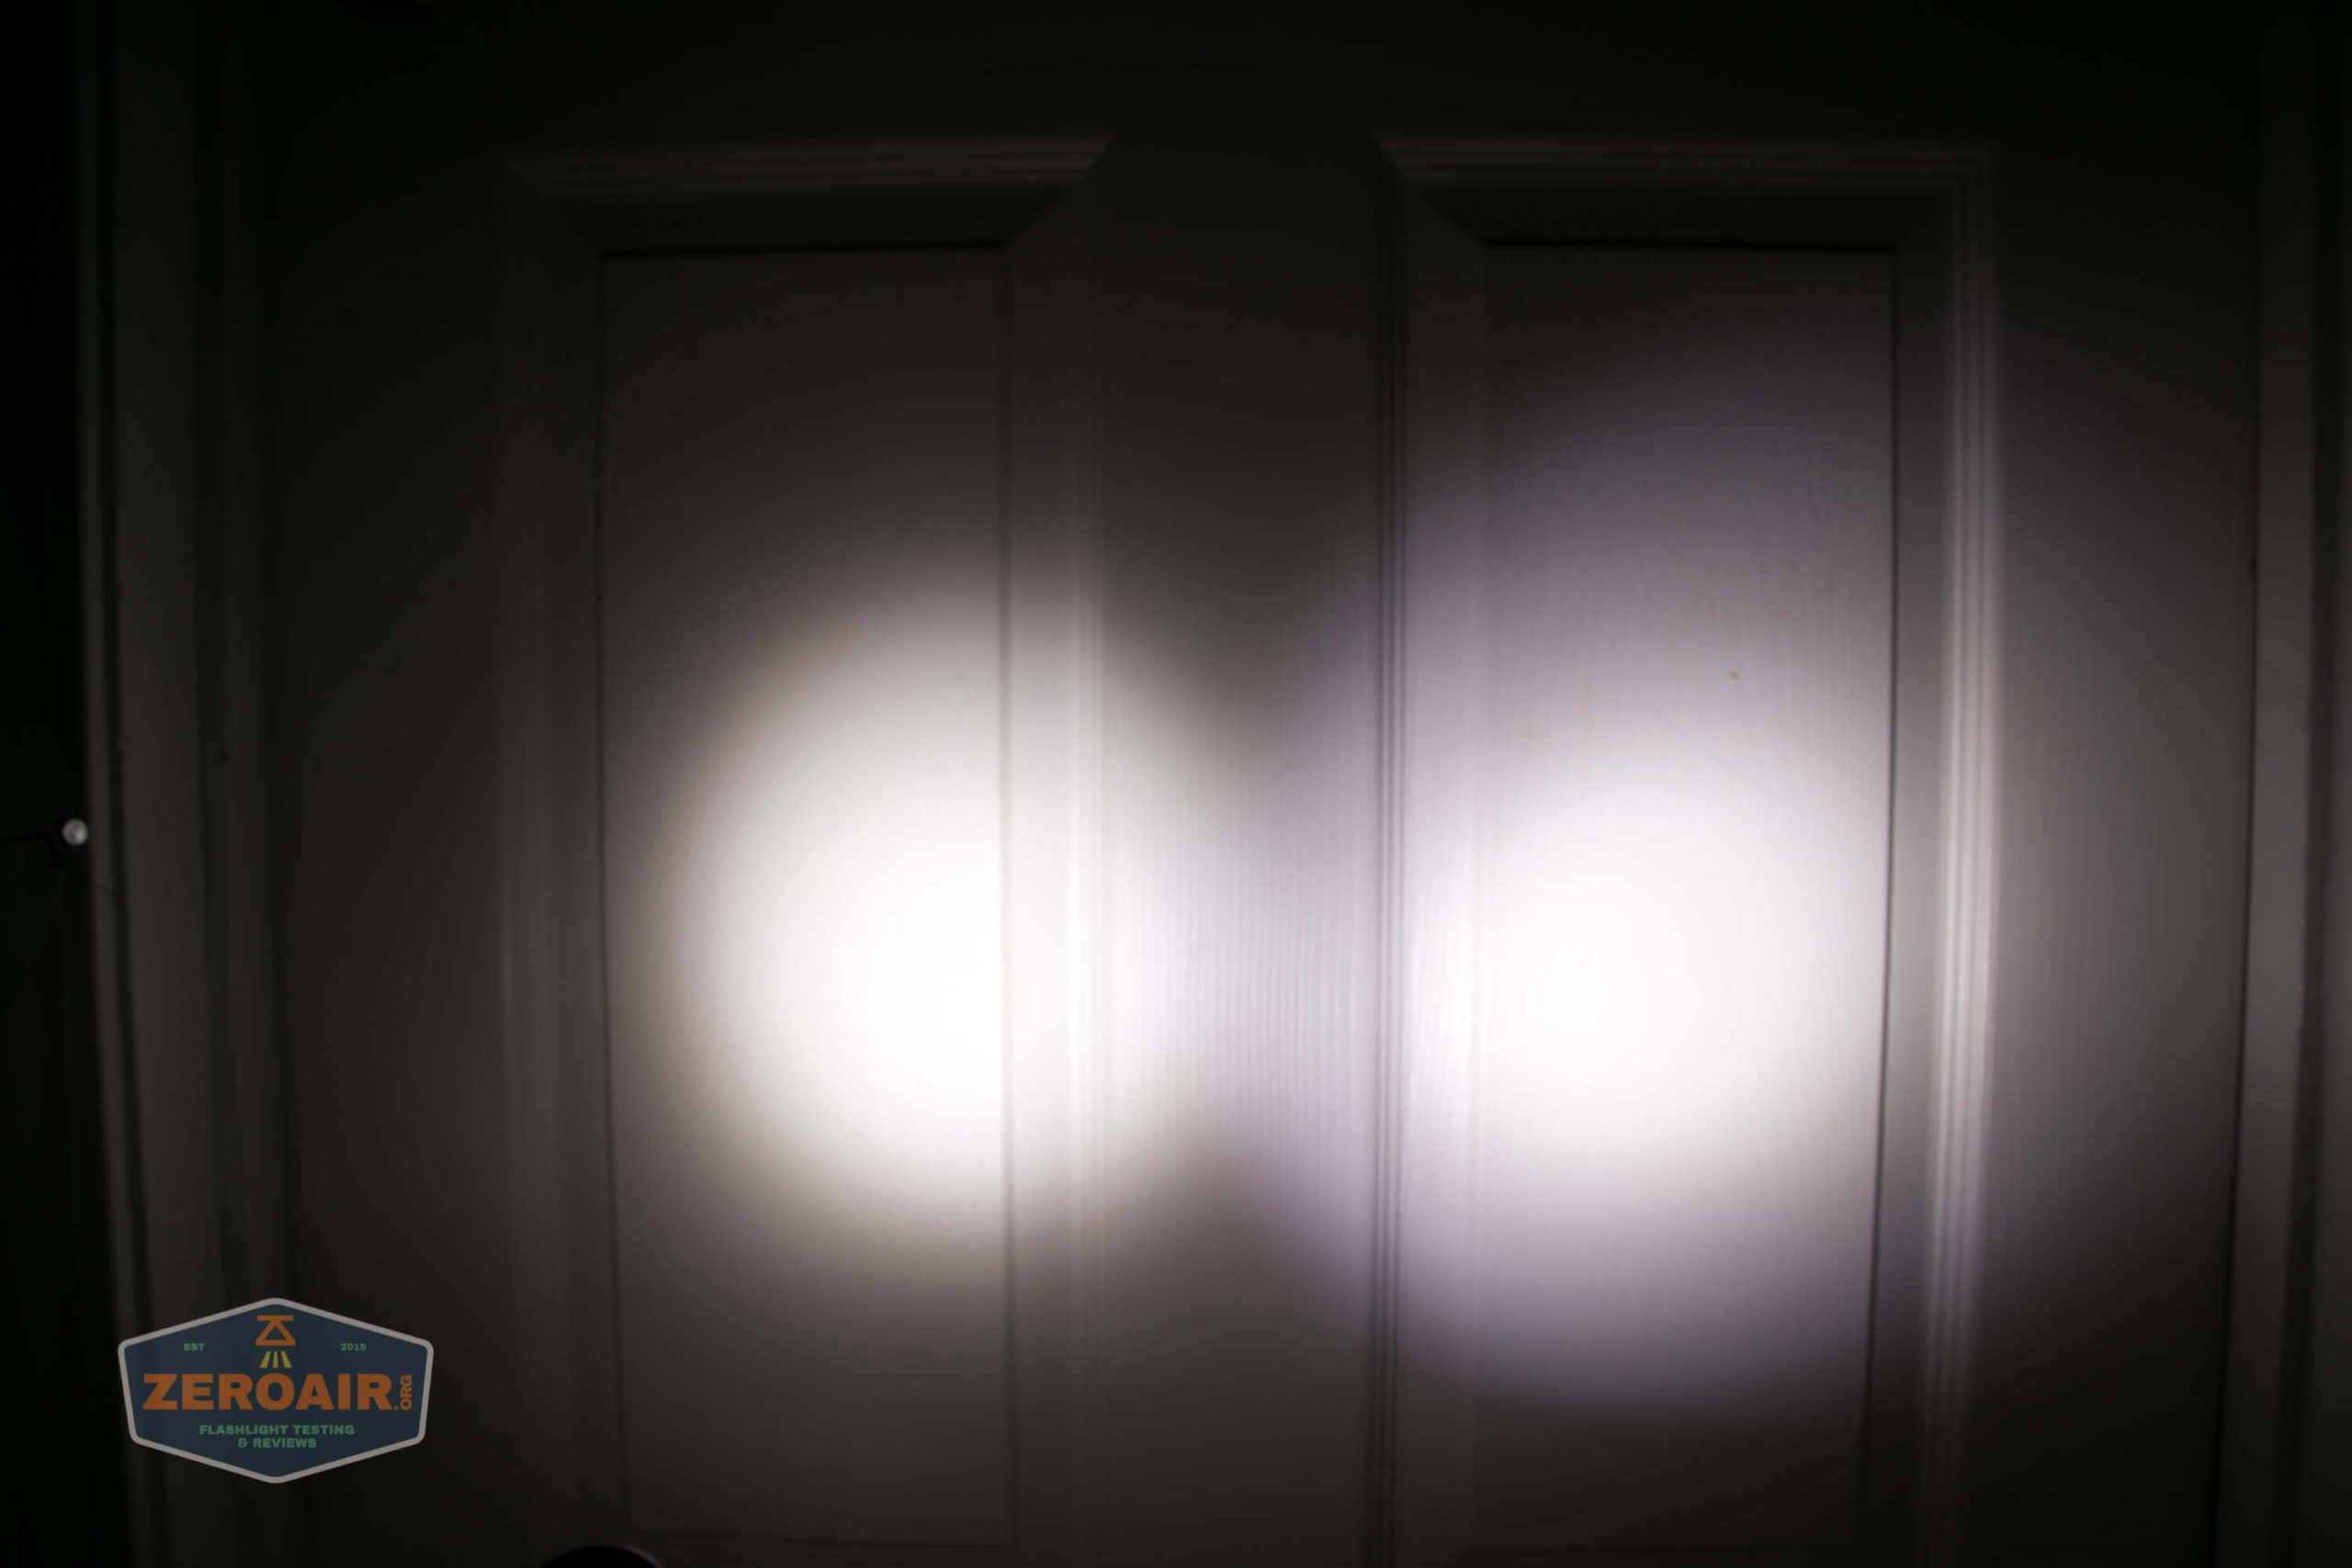 acebeam h17 nichia 18350 beamshot door low